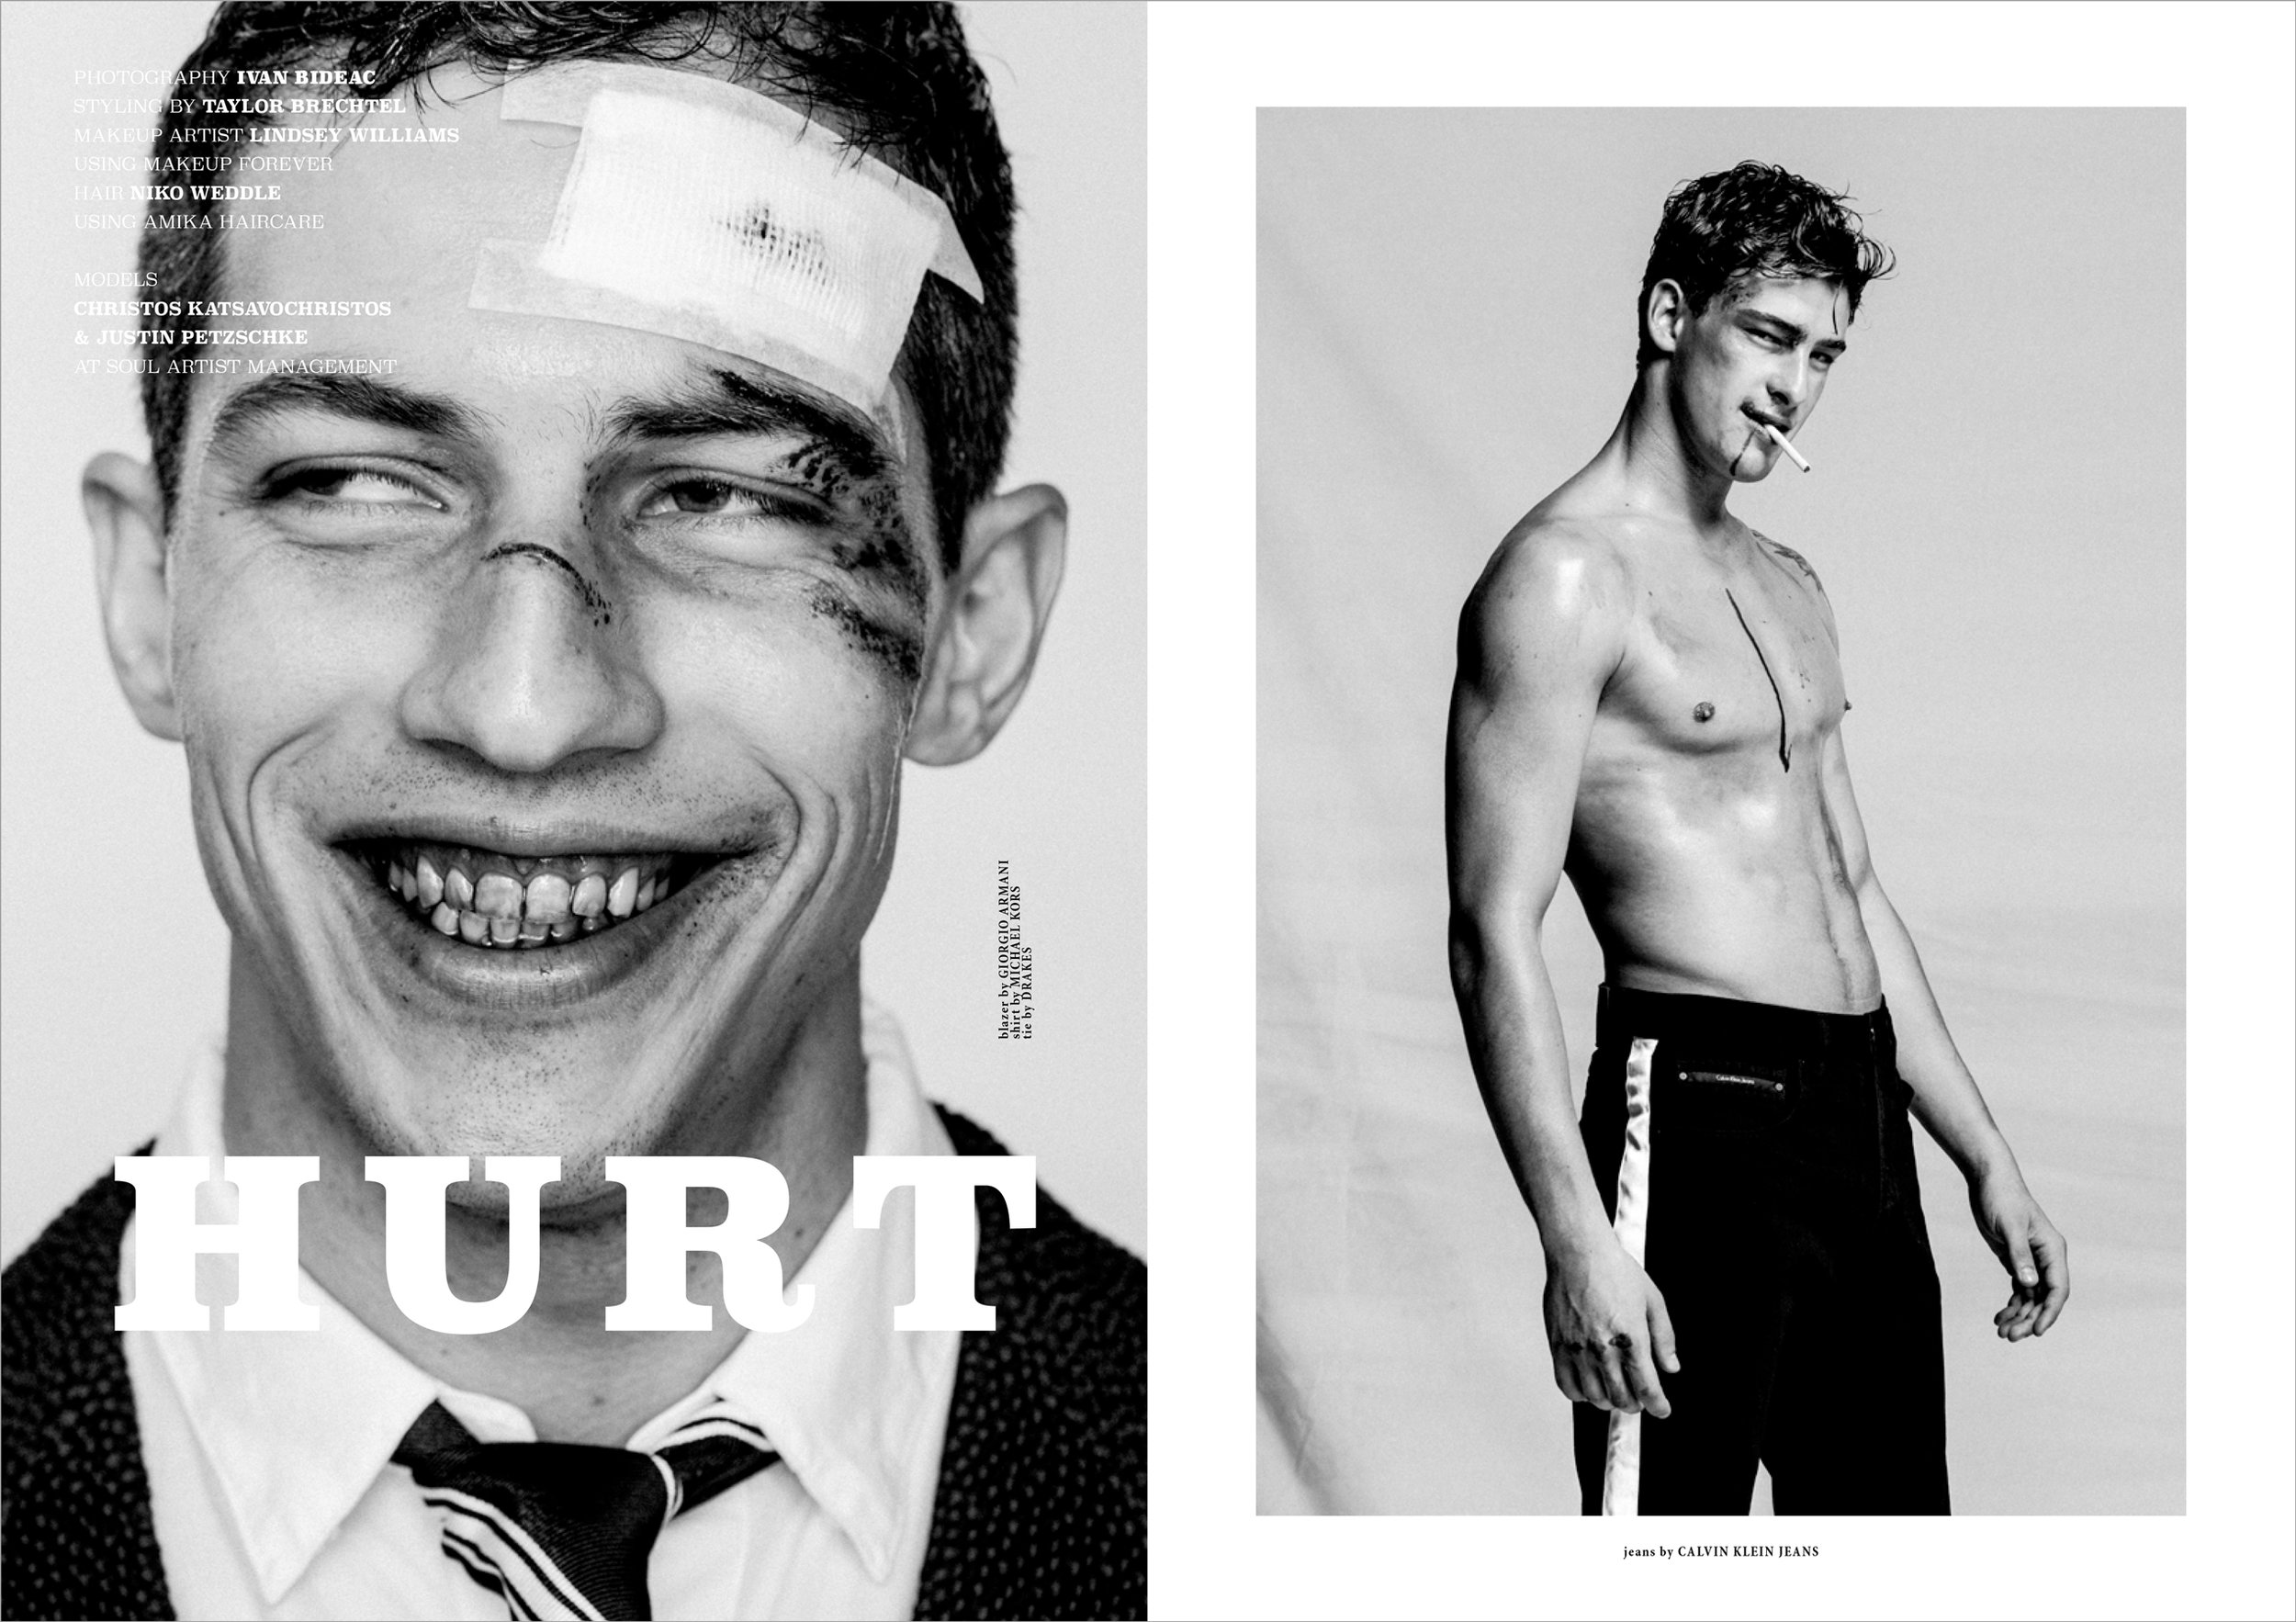 HURT-for-Client-Magazine-by-Ivan-Bideac.jpg